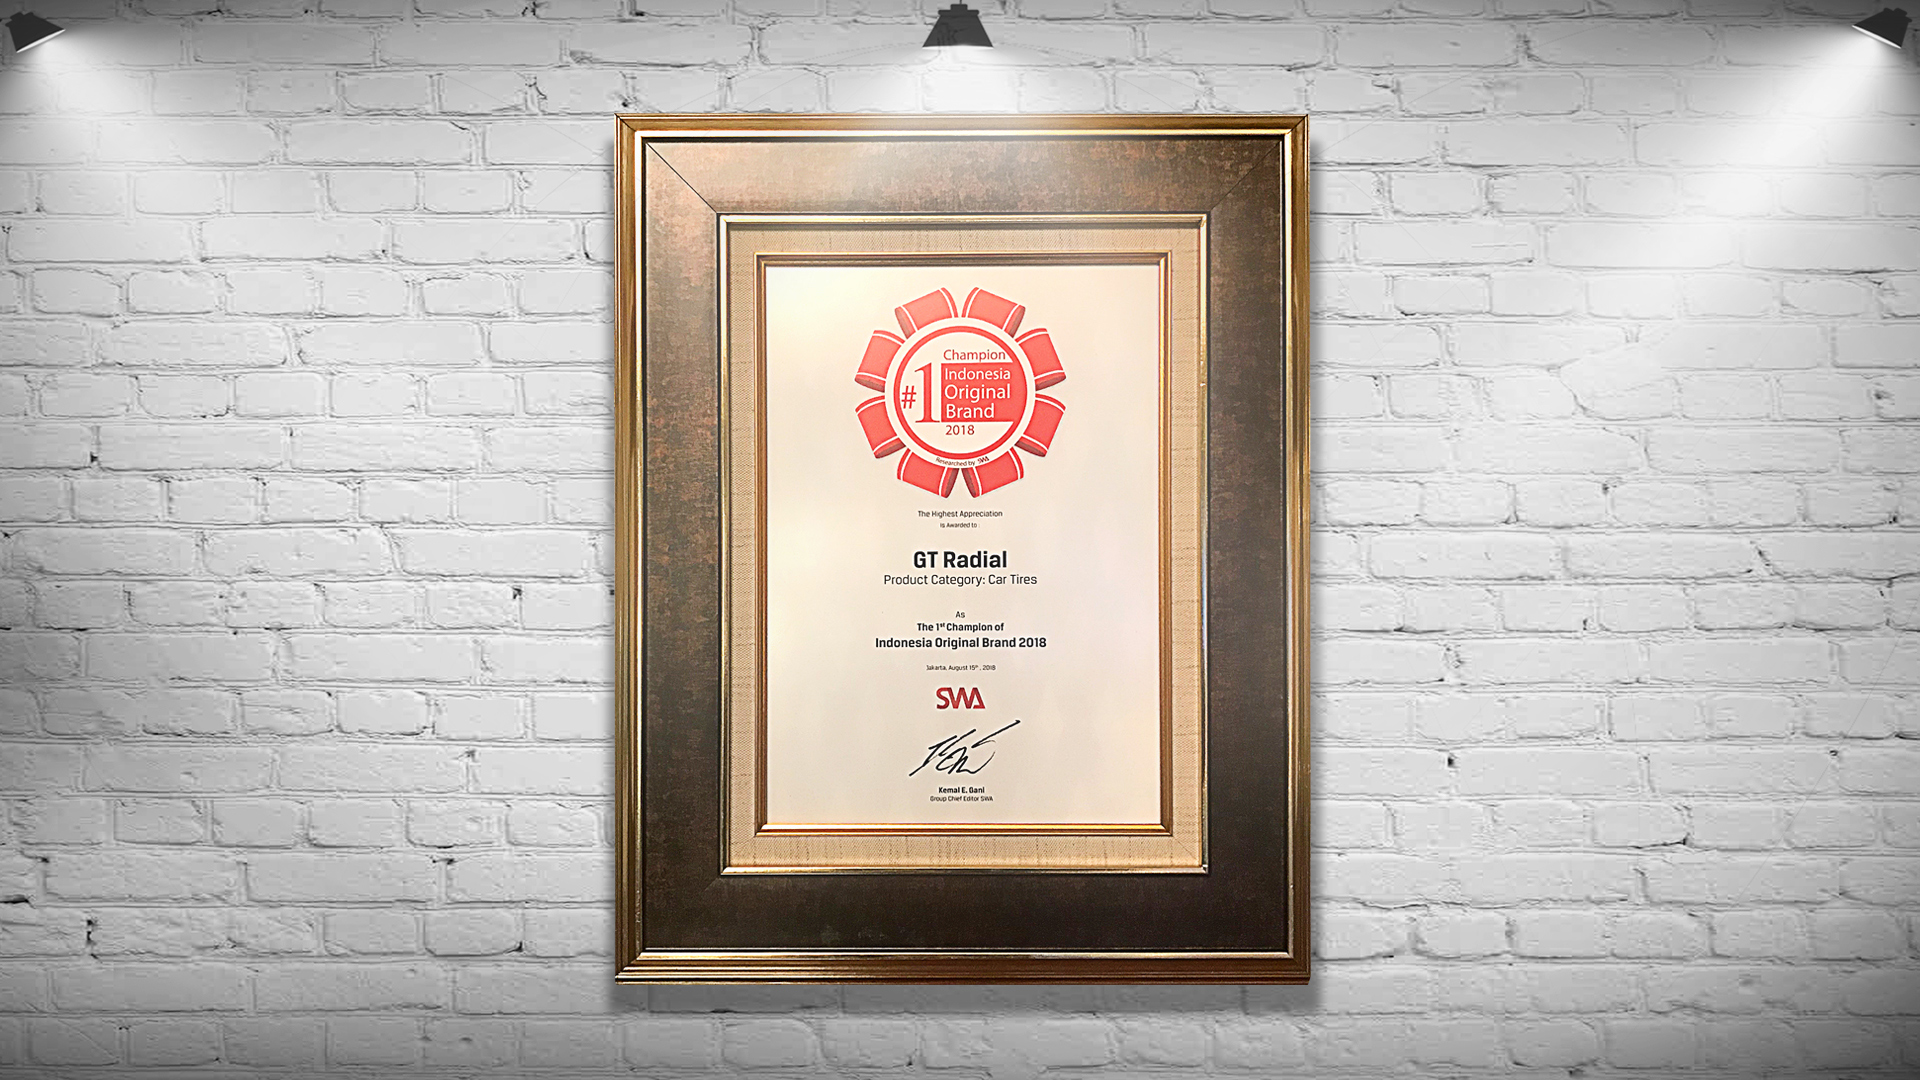 Indonesia Original Brand Award 2018